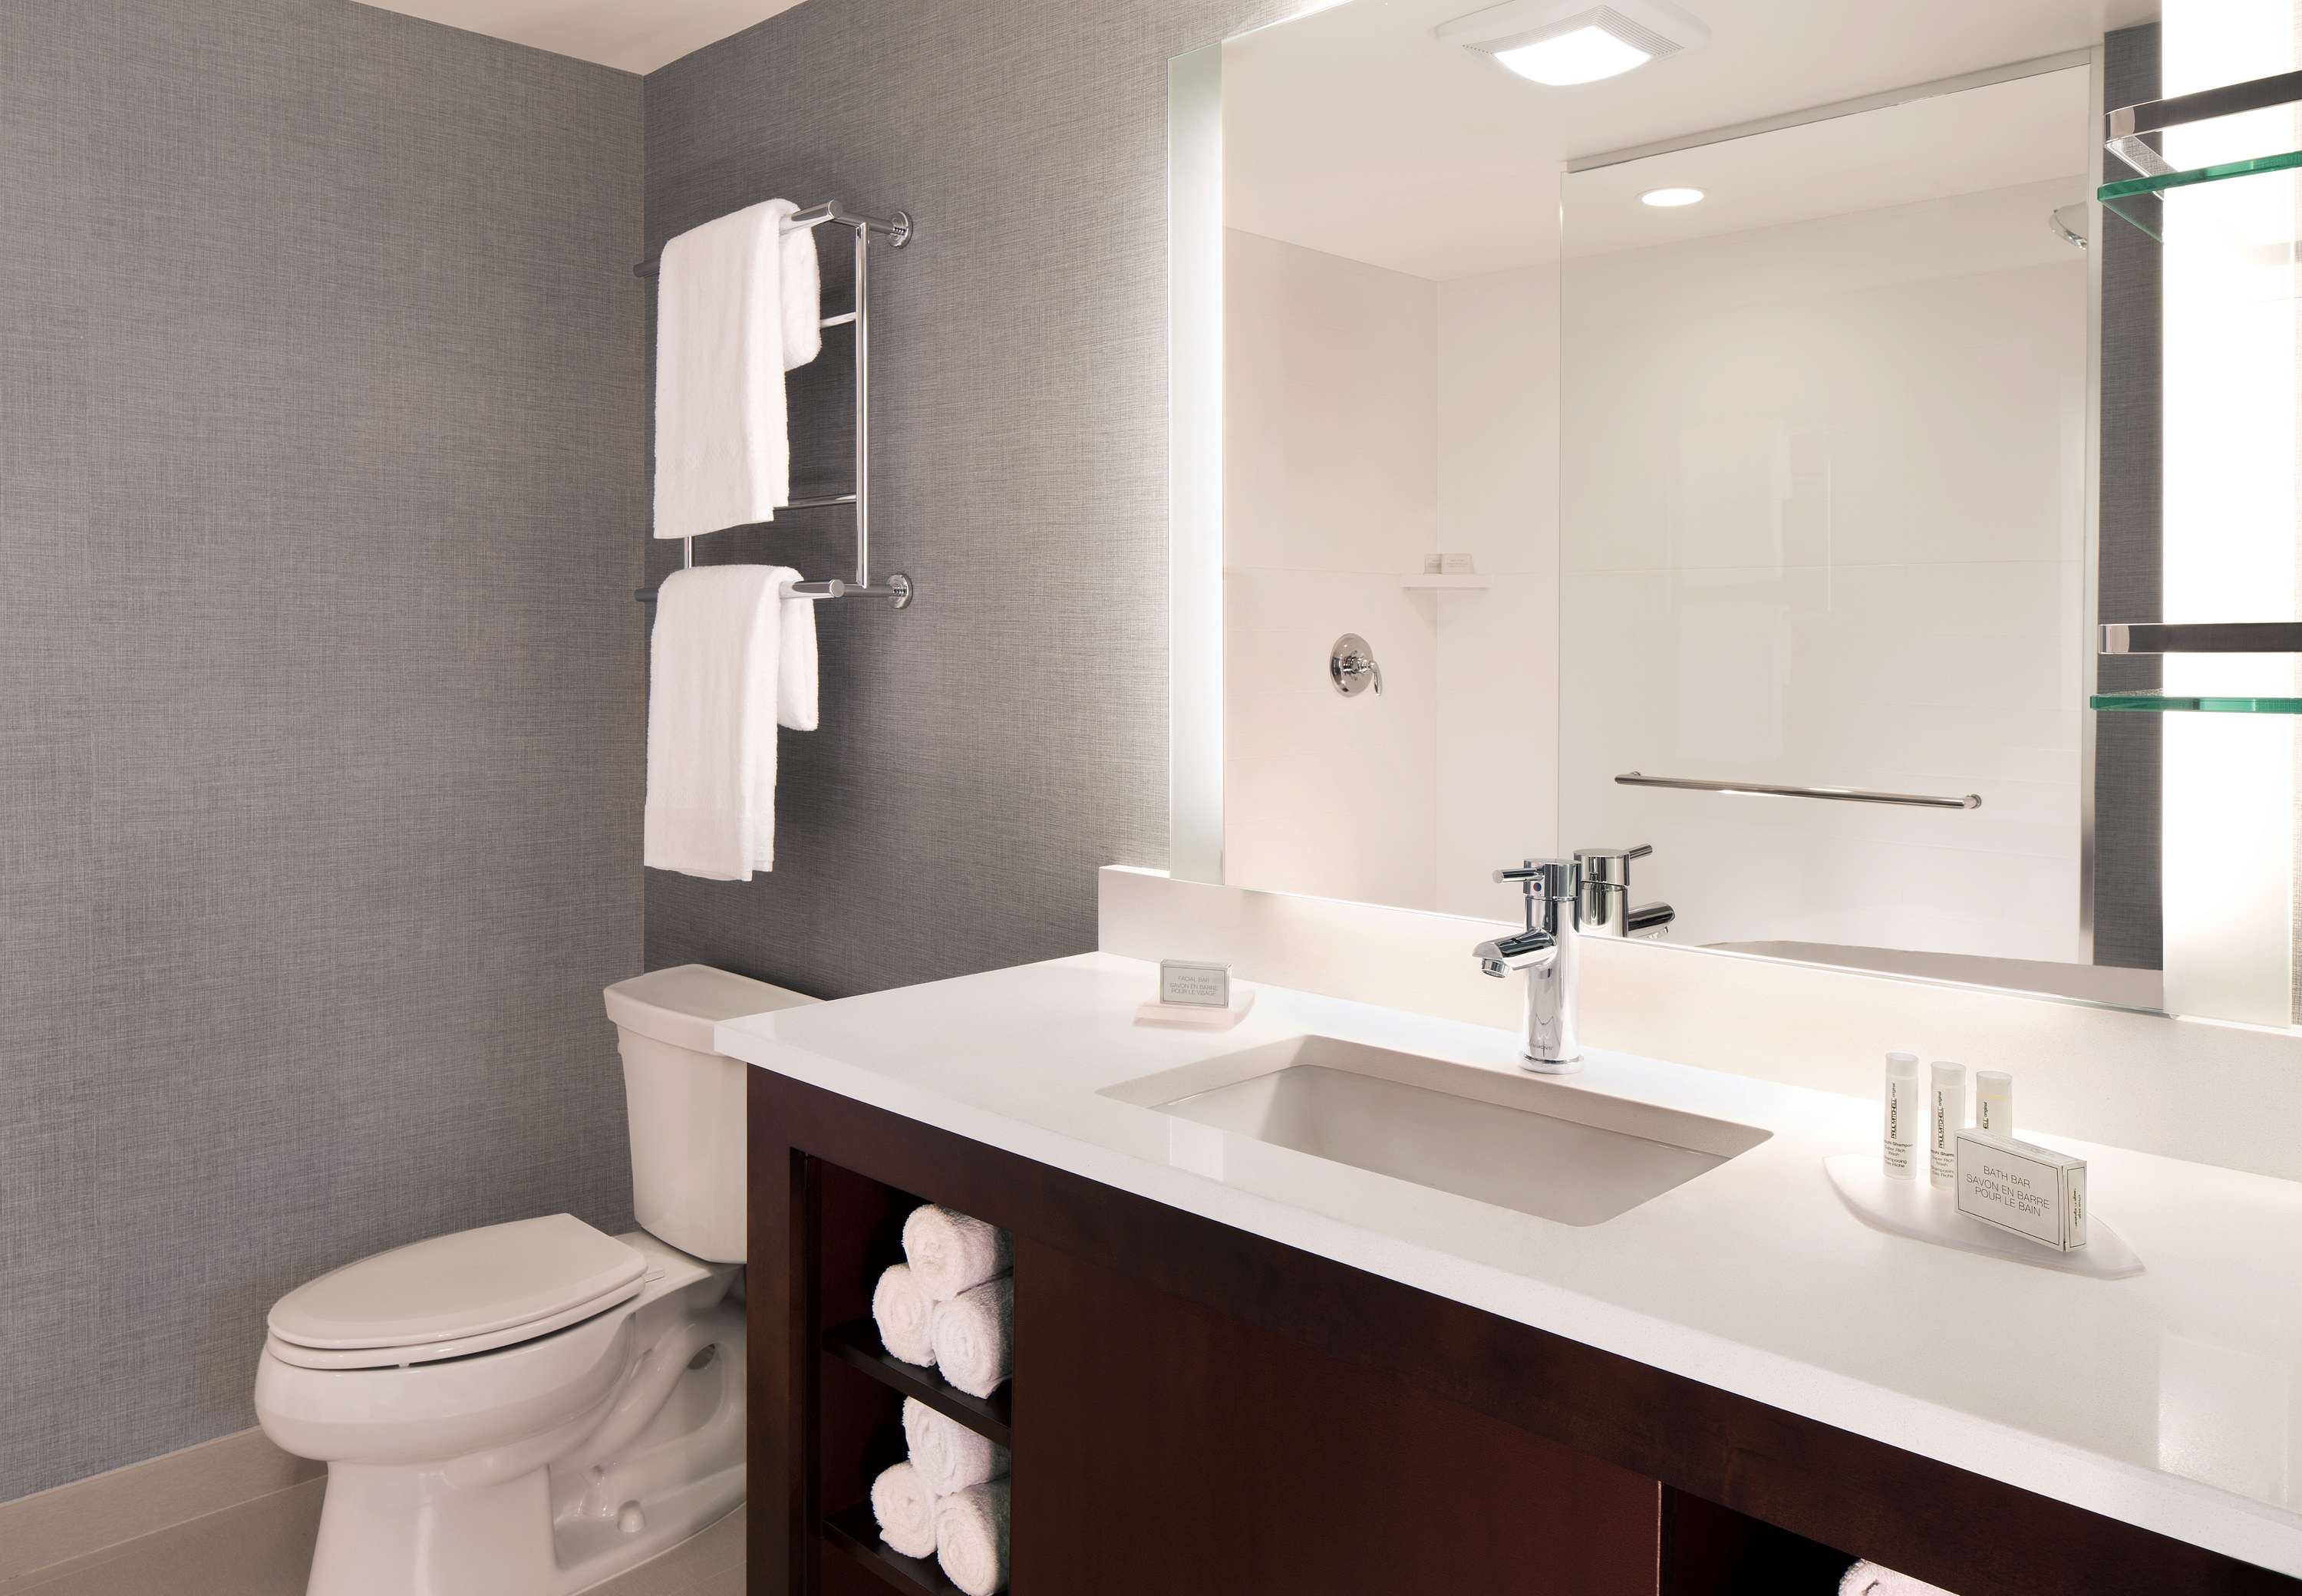 Residence Inn by Marriott Miami Airport West/Doral image 2